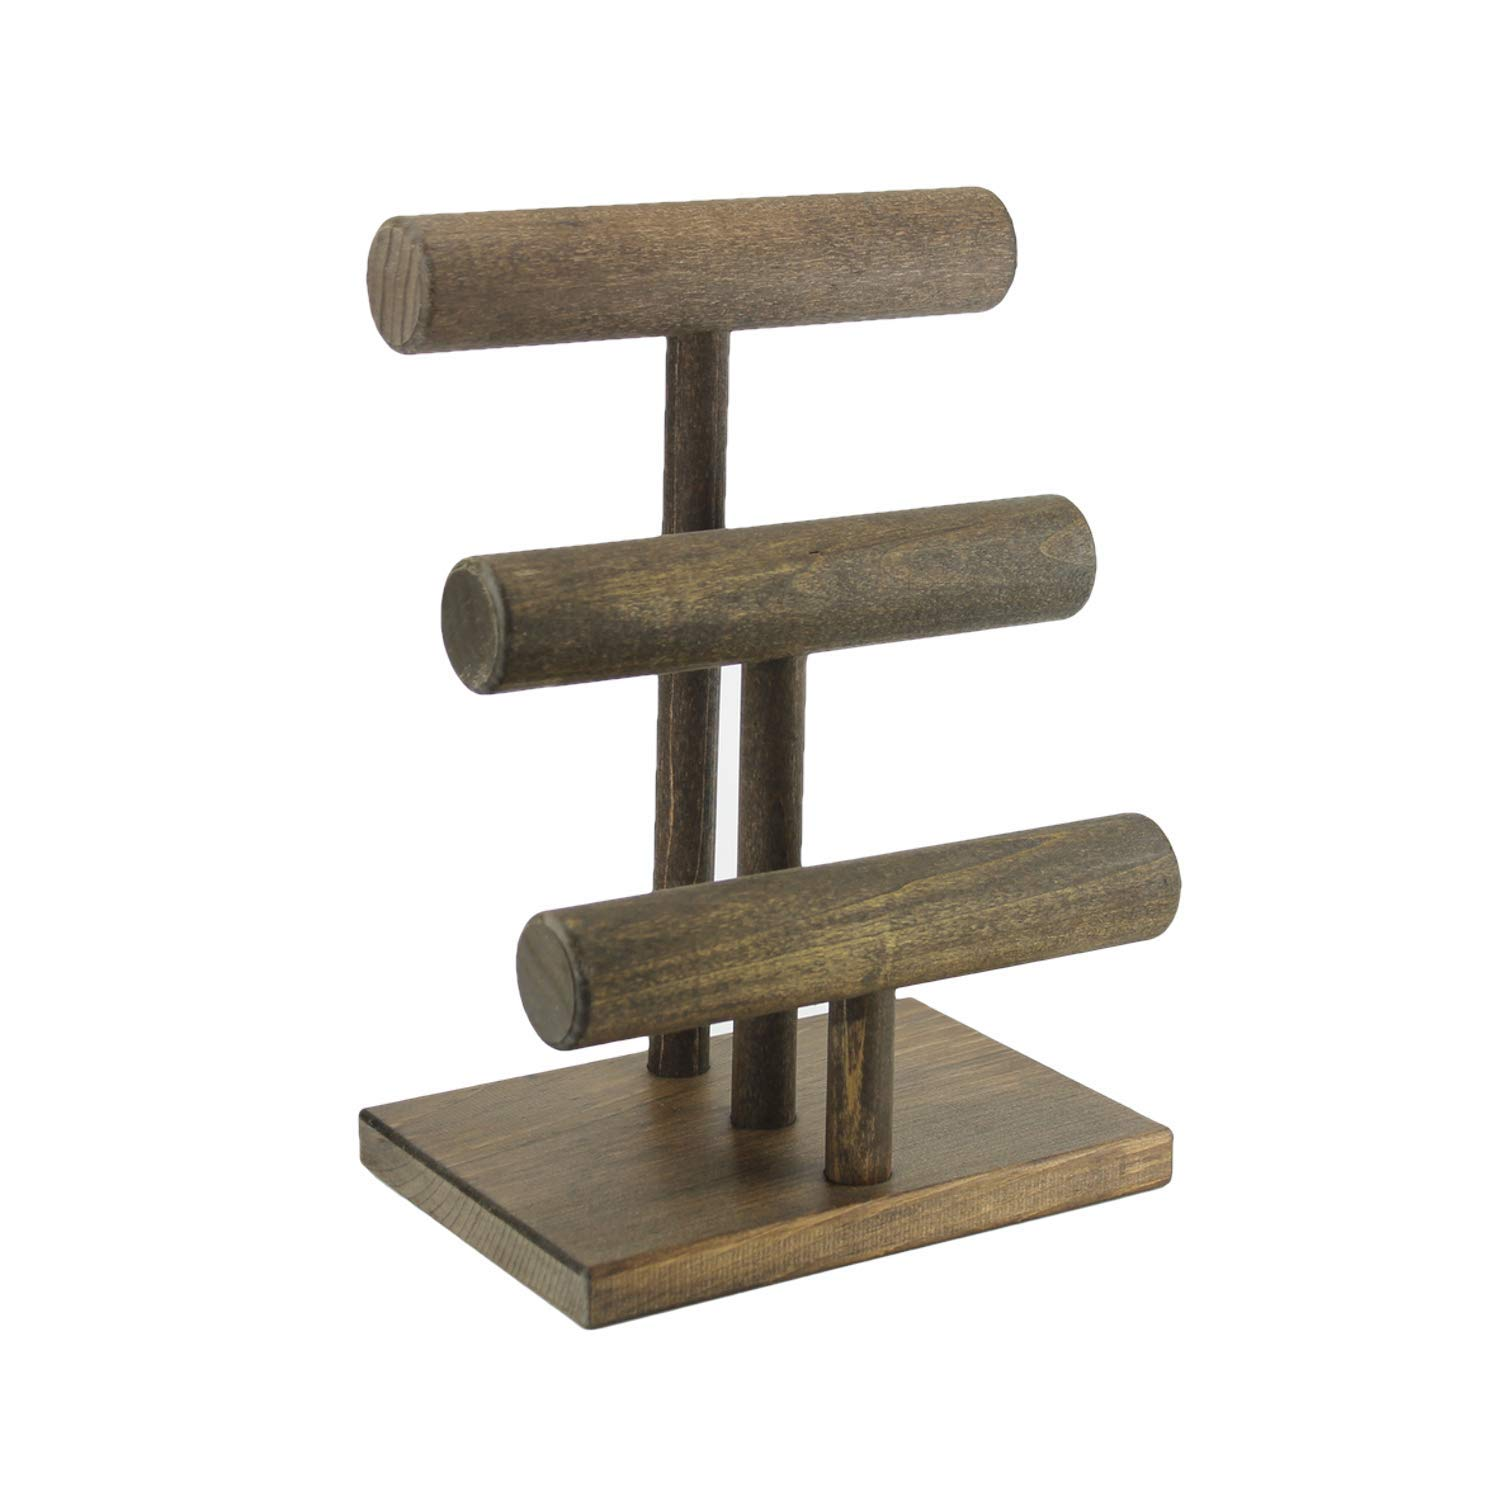 Jewelry Display Stand - Three Tier, Handmade in USA, Solid Wood T-Bar Display, Bracelet Watch Stand, Craft Show, Boutique Rustic Rack, 3 Tier